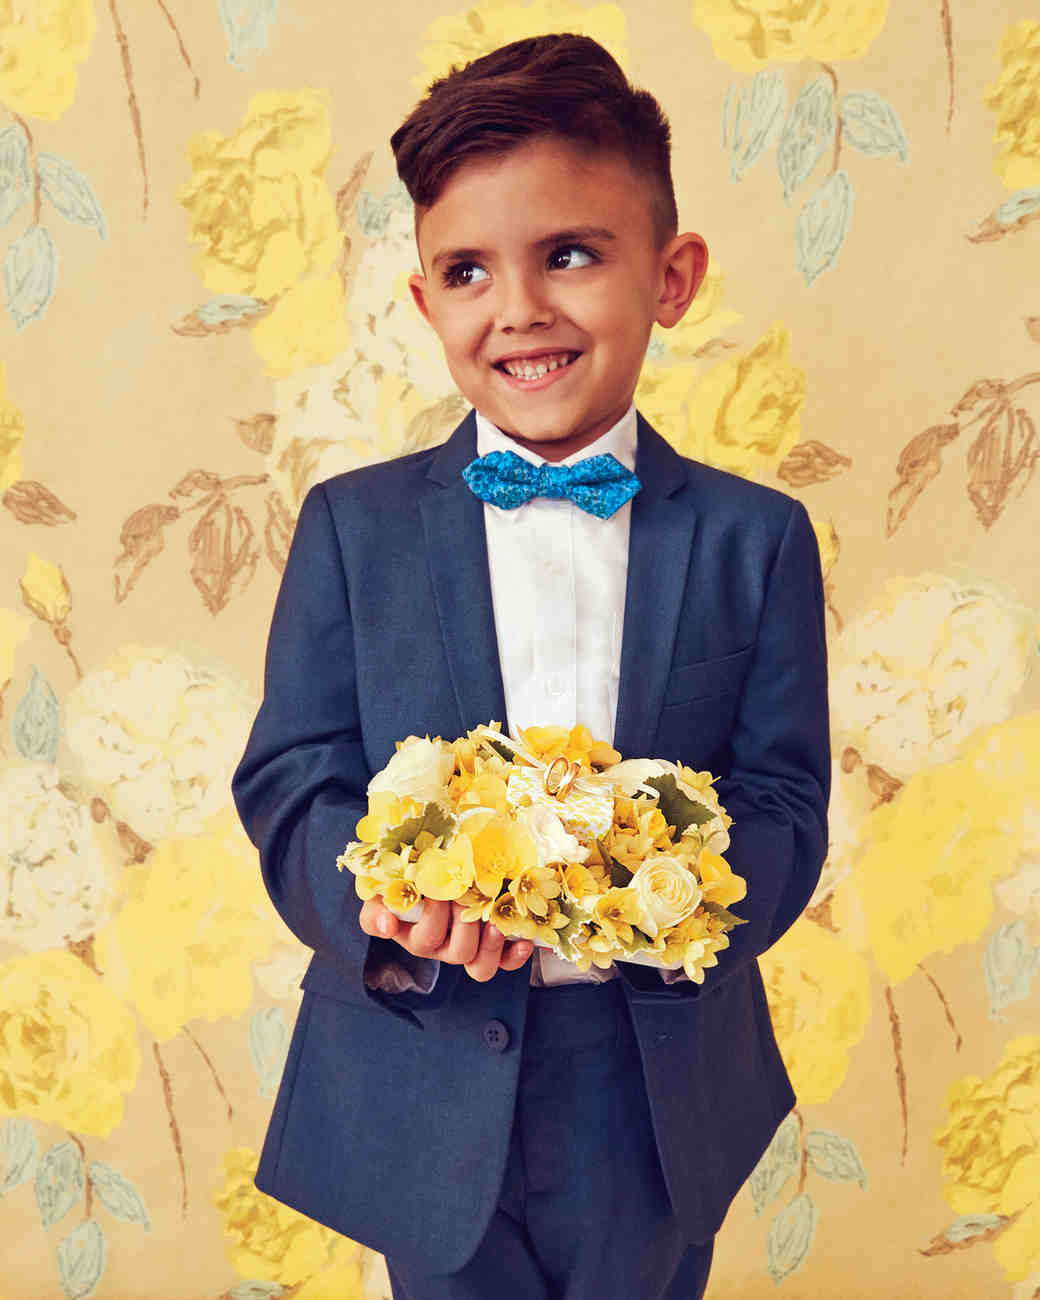 ring-bearer-yellow-flowers-0101-d111716.jpg